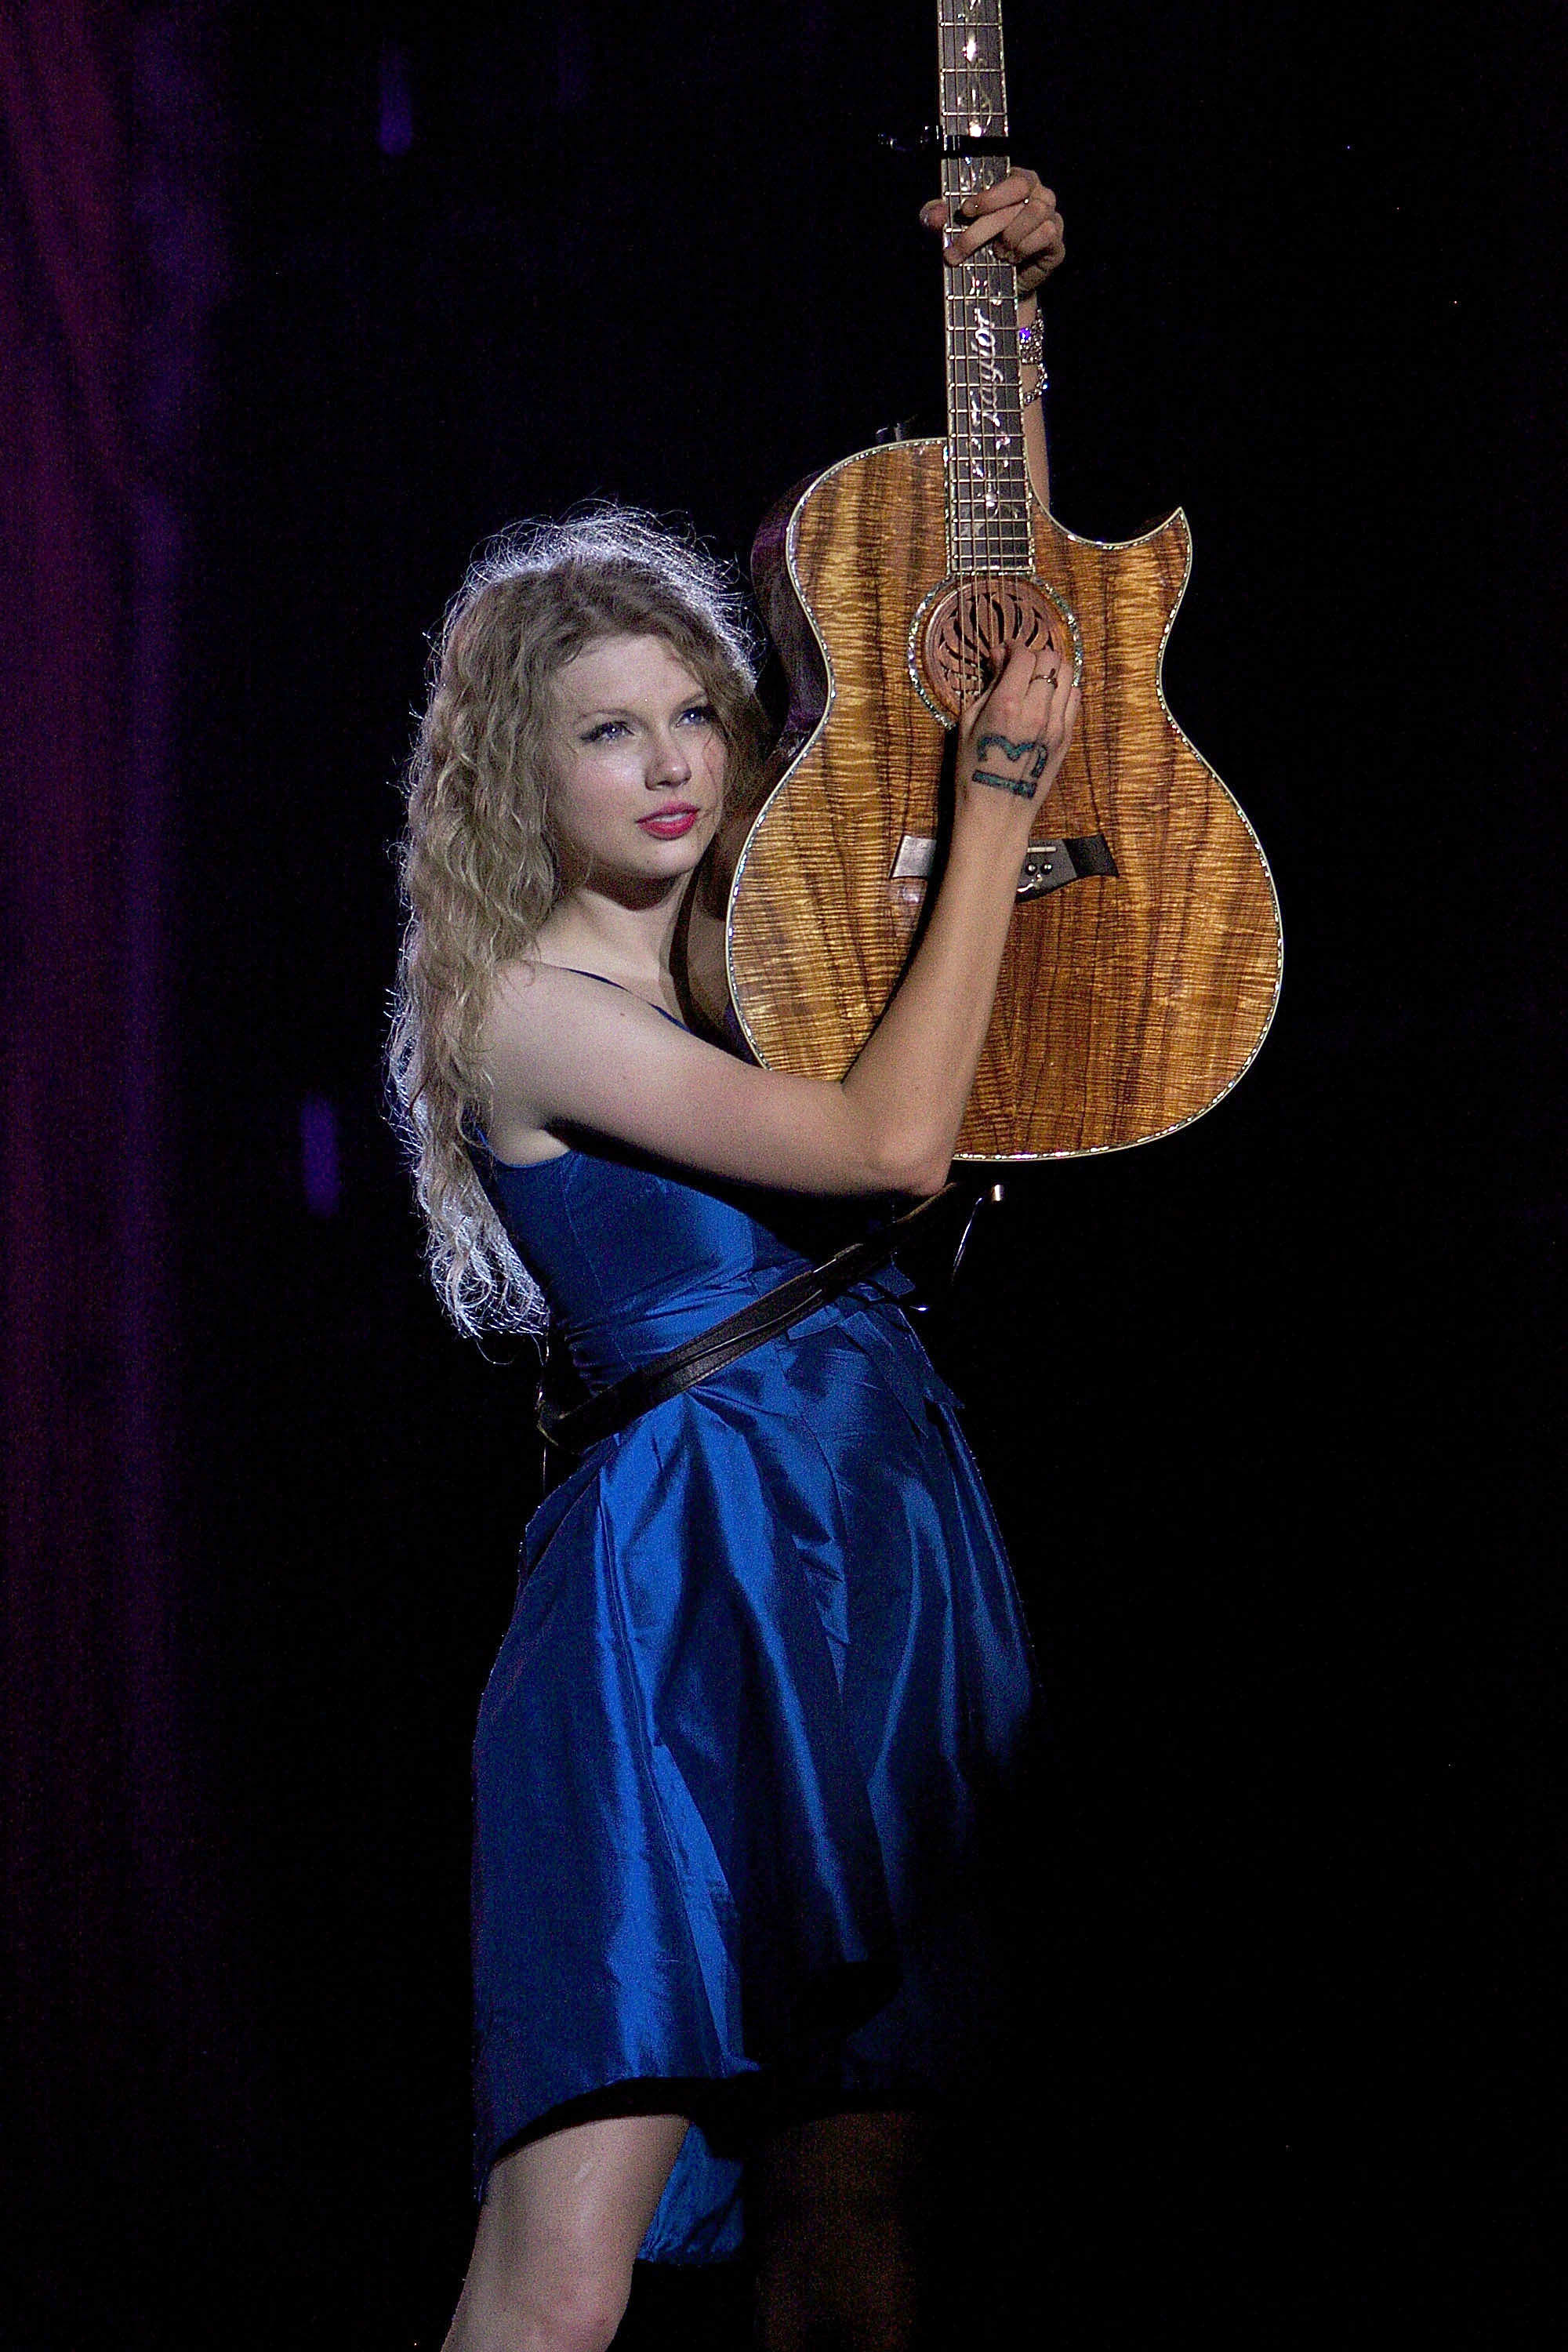 32669_Taylor_swift_performs_her_Fearless_Tour_at_Tiger_Stadium_037_122_532lo.jpg